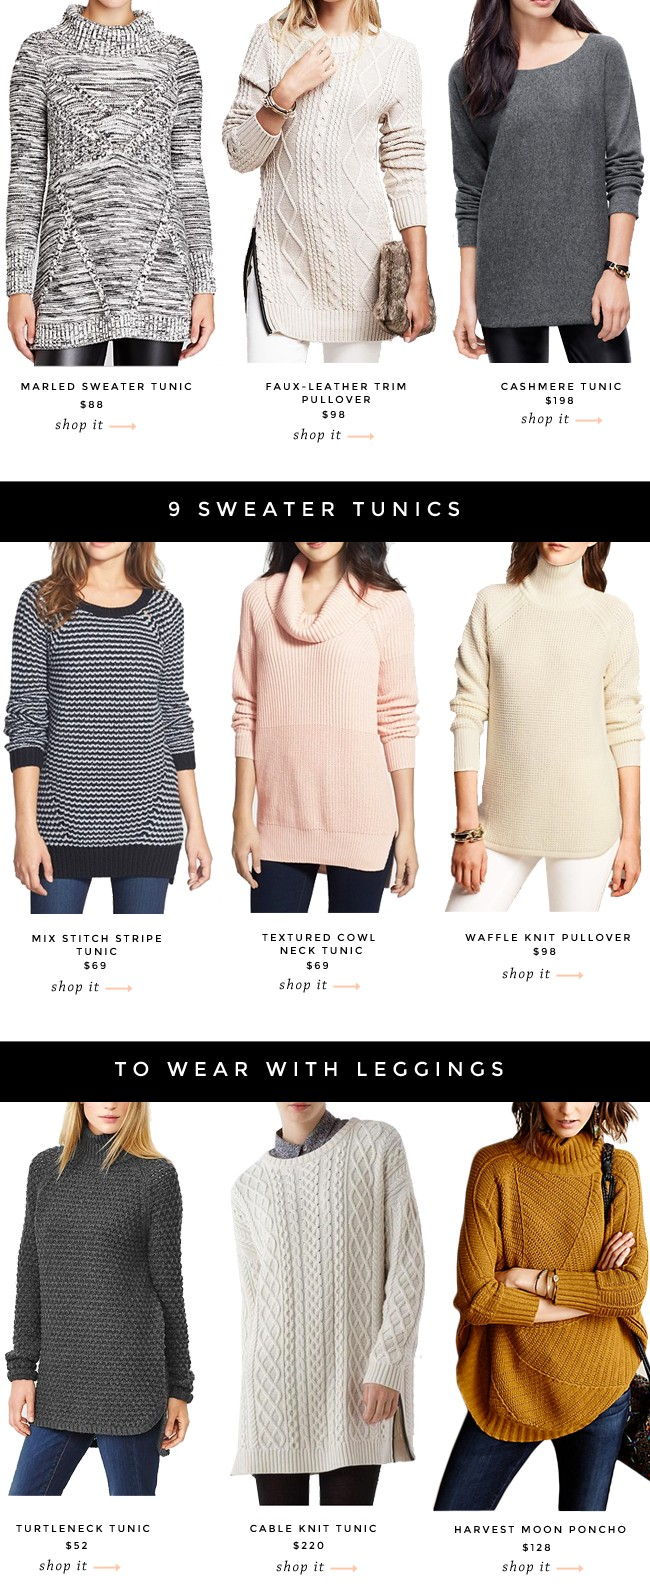 9 Sweater Tunics To Wear With Leggings